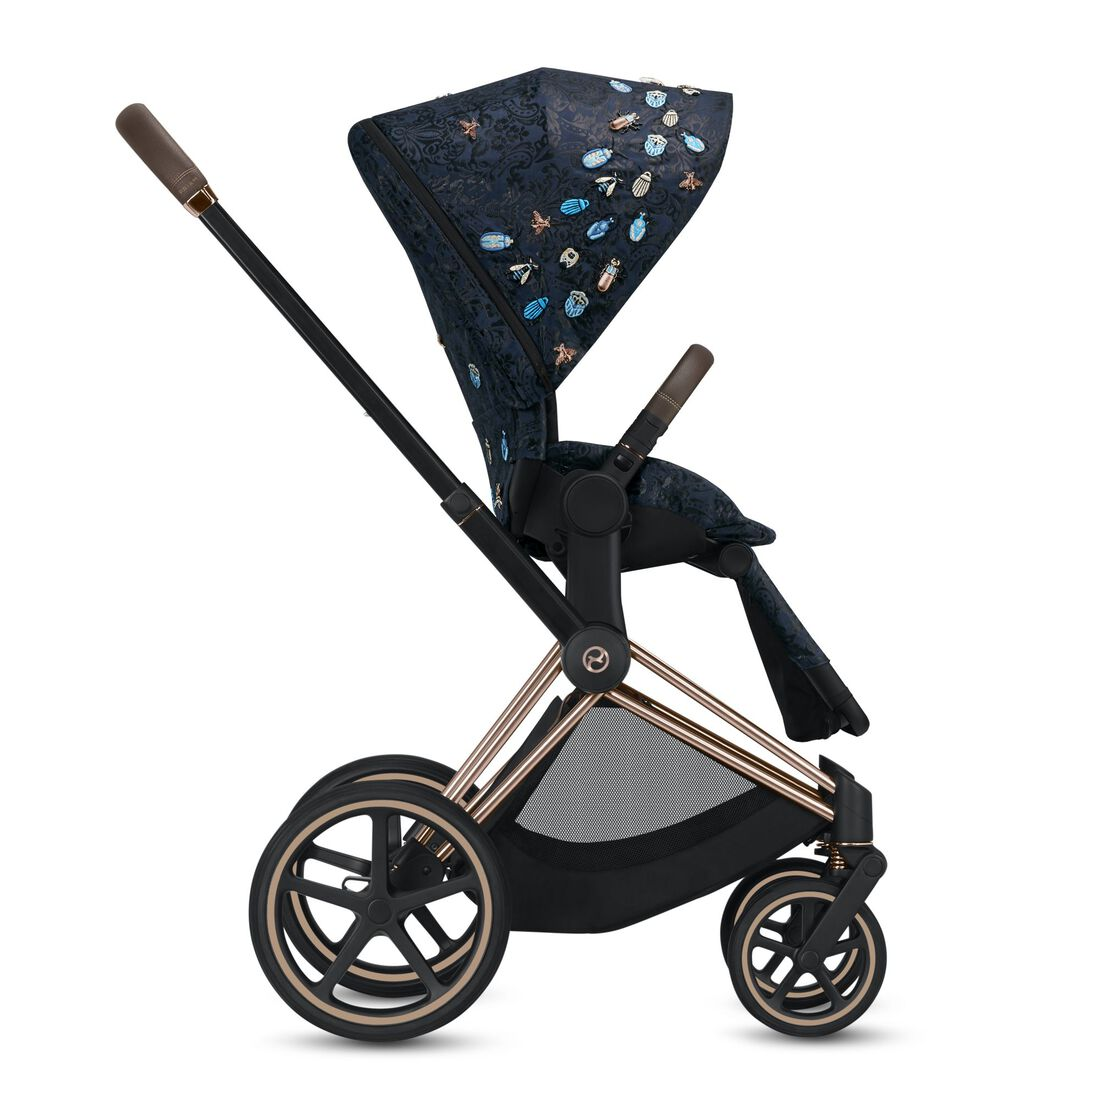 CYBEX Priam Seat Pack - Jewels of Nature in Jewels of Nature large image number 3